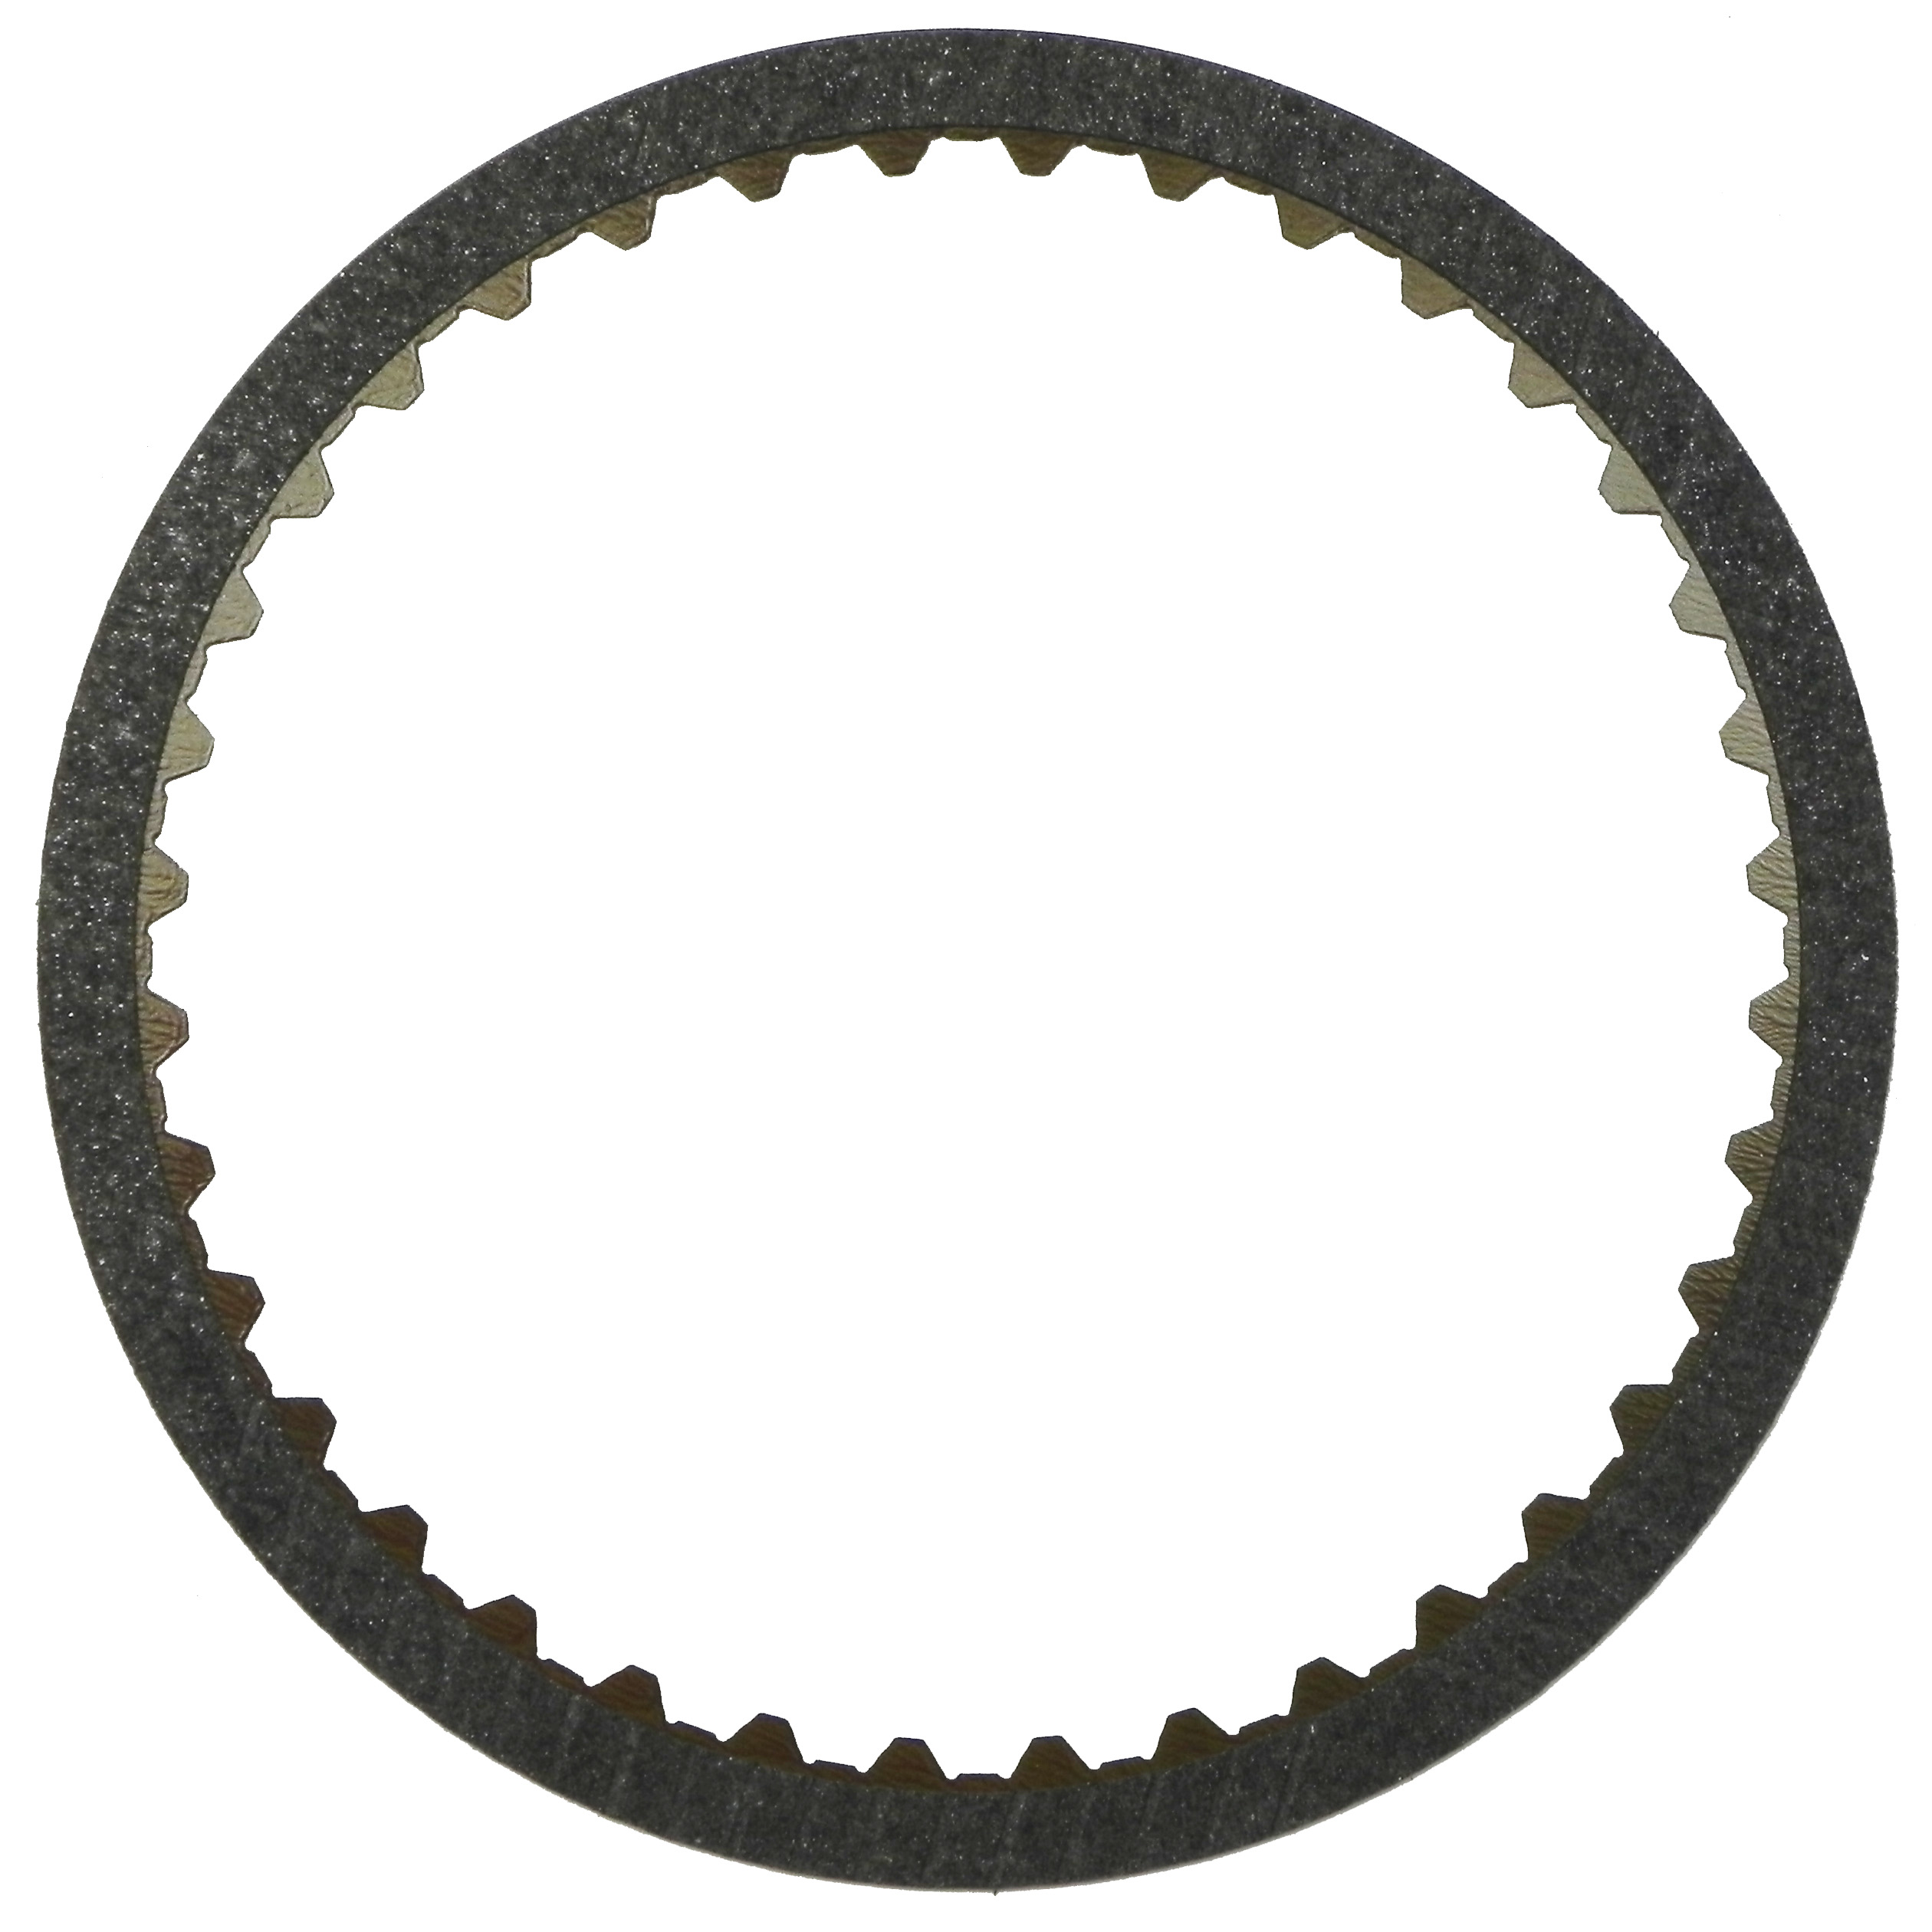 R572615 | 1996-ON Friction Clutch Plate High Energy K2 Clutch (Large ID) High Energy